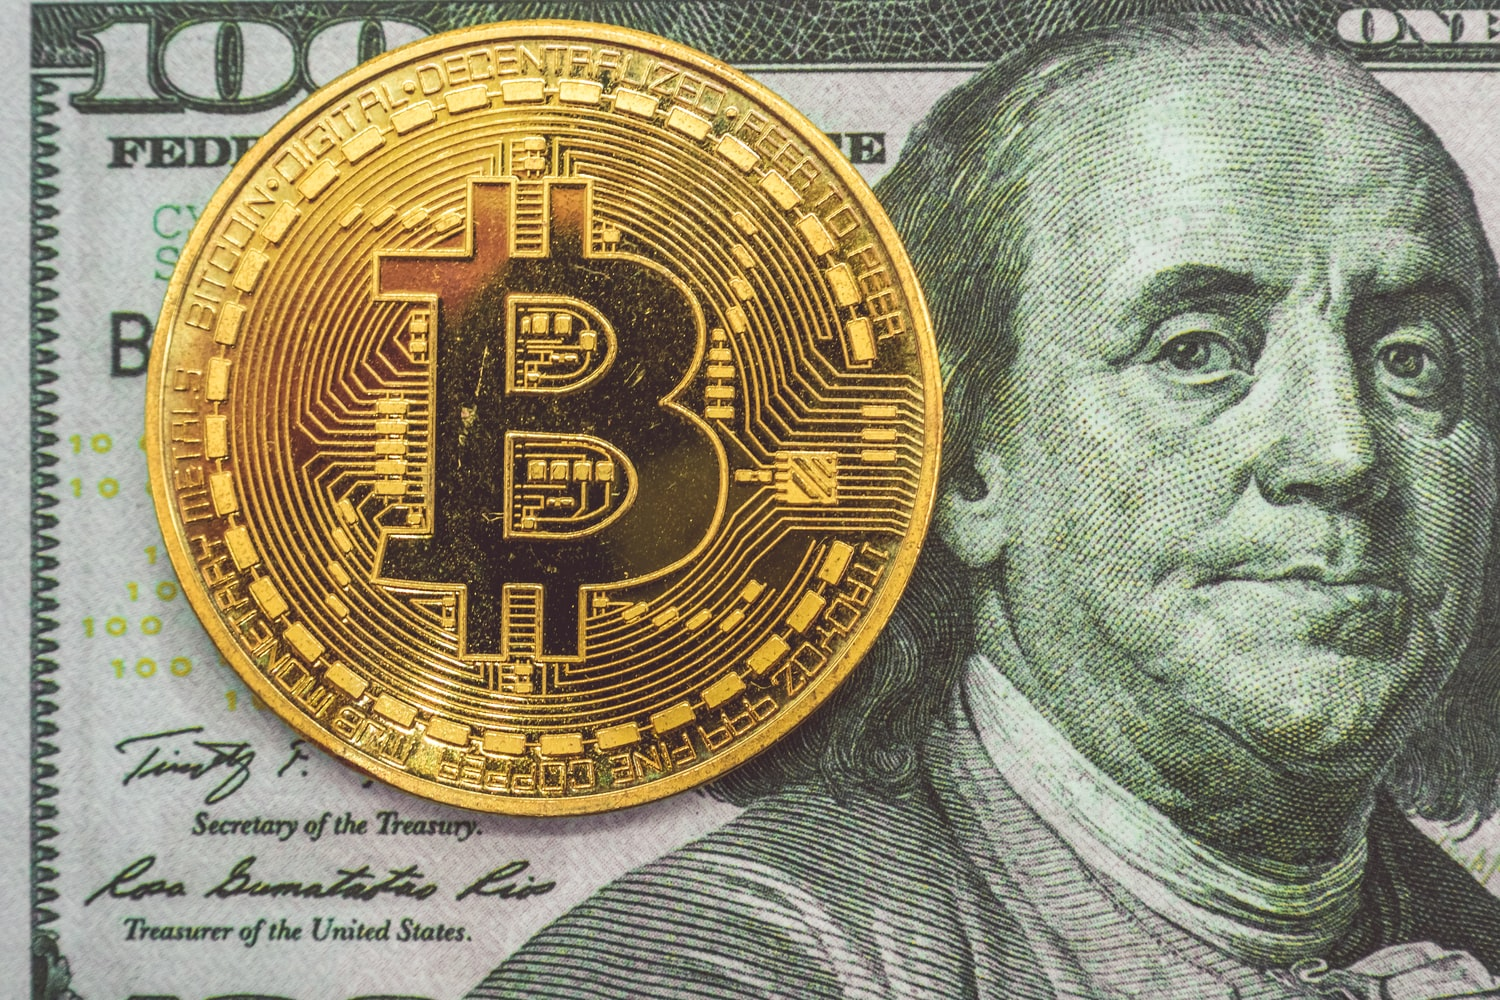 What Will the Next Big Pullback of Bitcoin's Price Look Like?